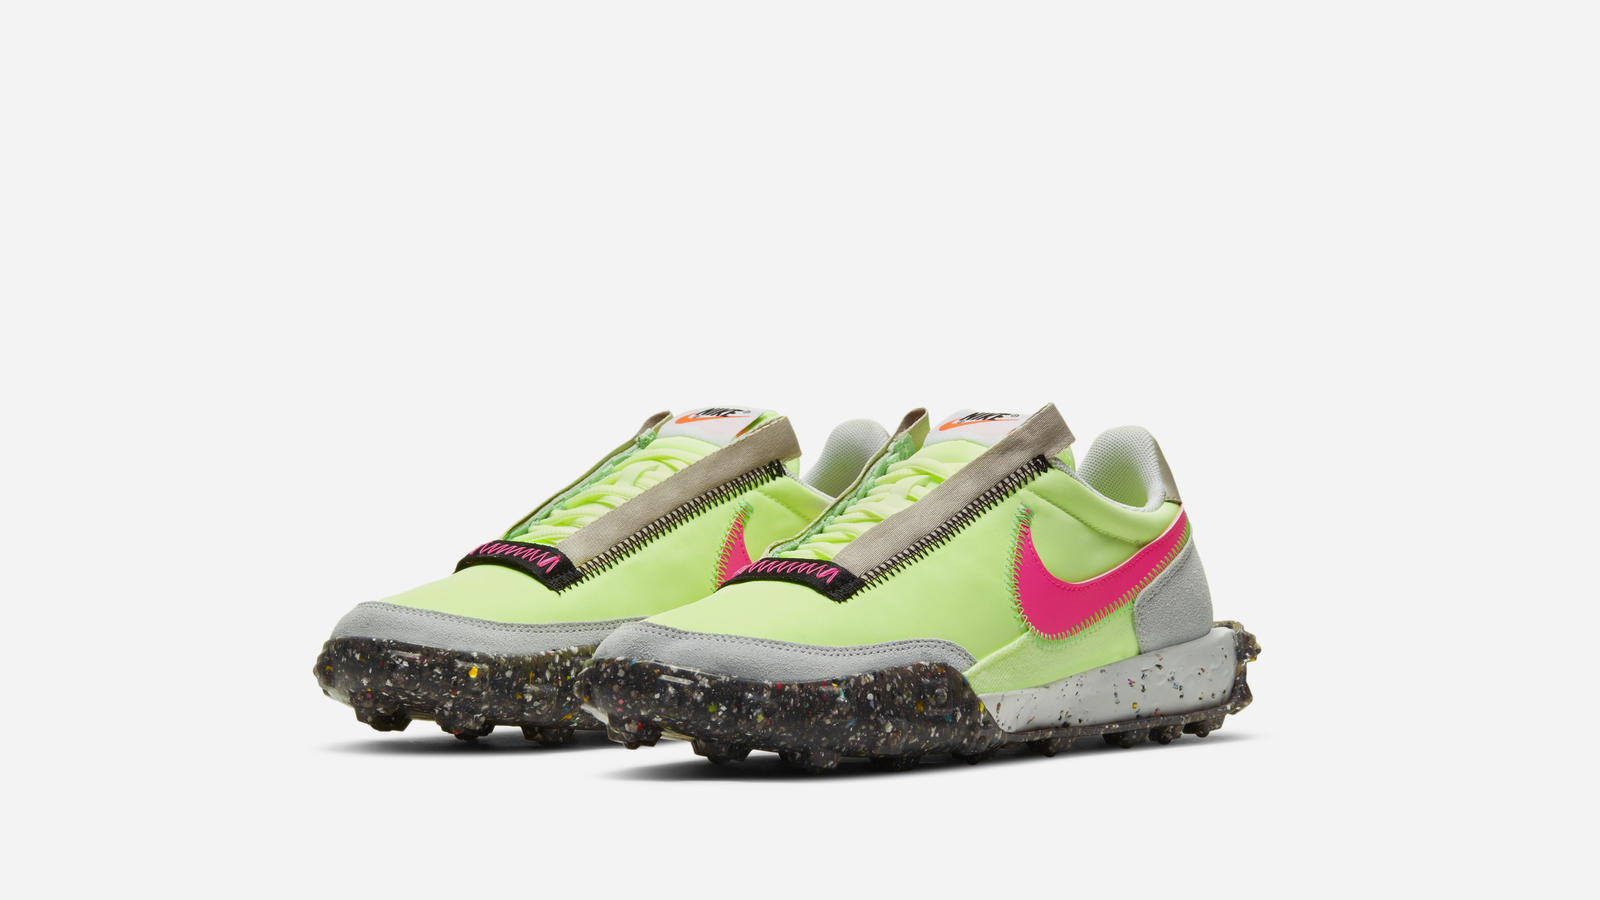 Nike Women's Waffle Racer Crater Official Images and Release Date 4